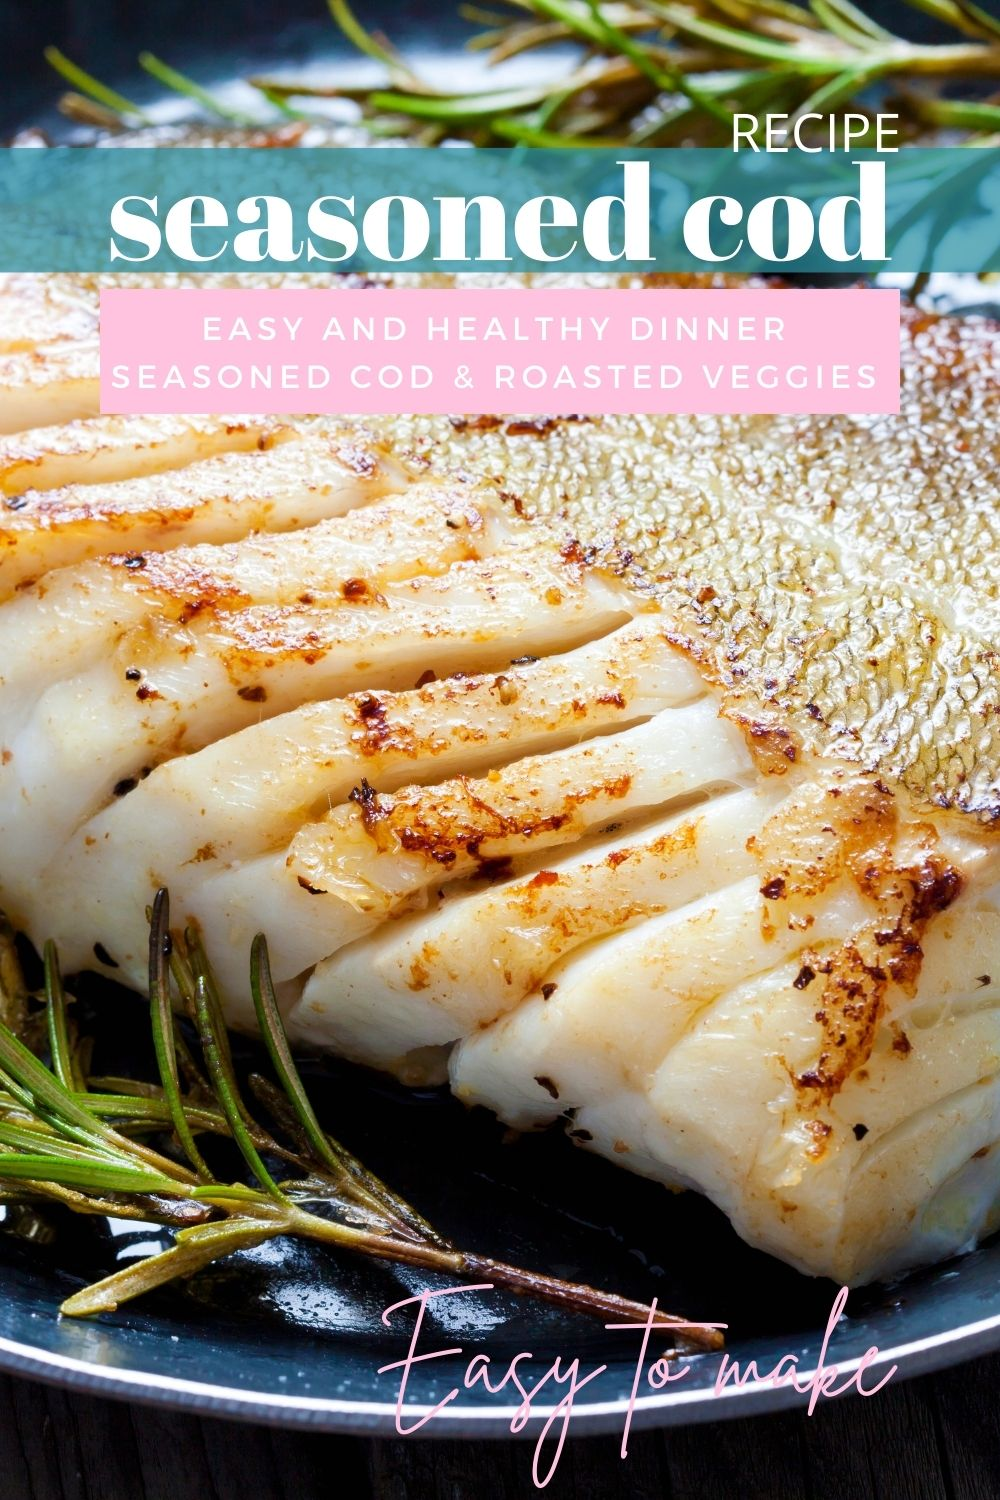 baked cod, healthy recipe, weightless, 100 calorie, seafood, pescatarian, diet, low carb, whole foods, roasted vegetables, how to cook cod, white fish